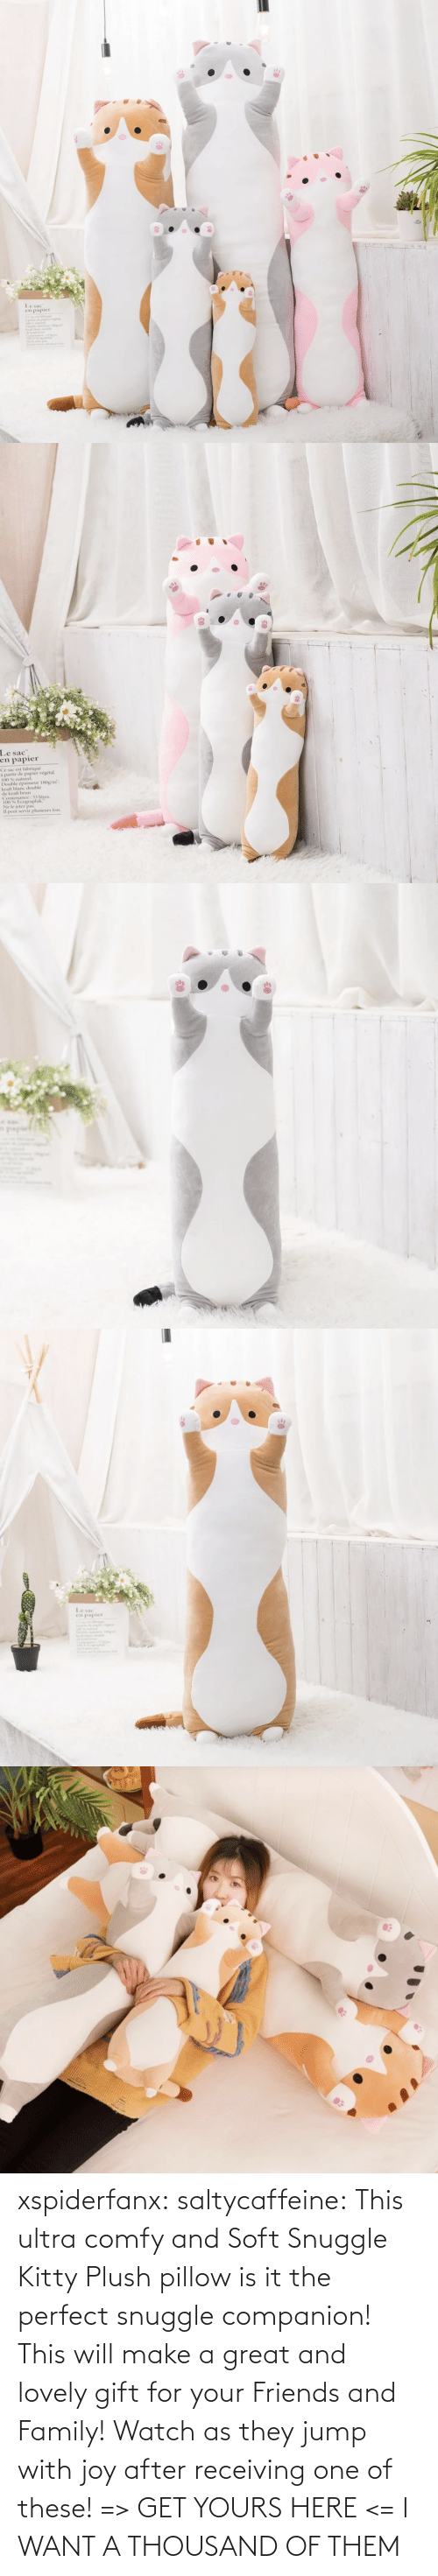 Long: xspiderfanx:  saltycaffeine: This ultra comfy and Soft Snuggle Kitty Plush pillow is it the perfect snuggle companion! This will make a great and lovely gift for your Friends and Family! Watch as they jump with joy after receiving one of these! => GET YOURS HERE <=    I WANT A THOUSAND OF THEM